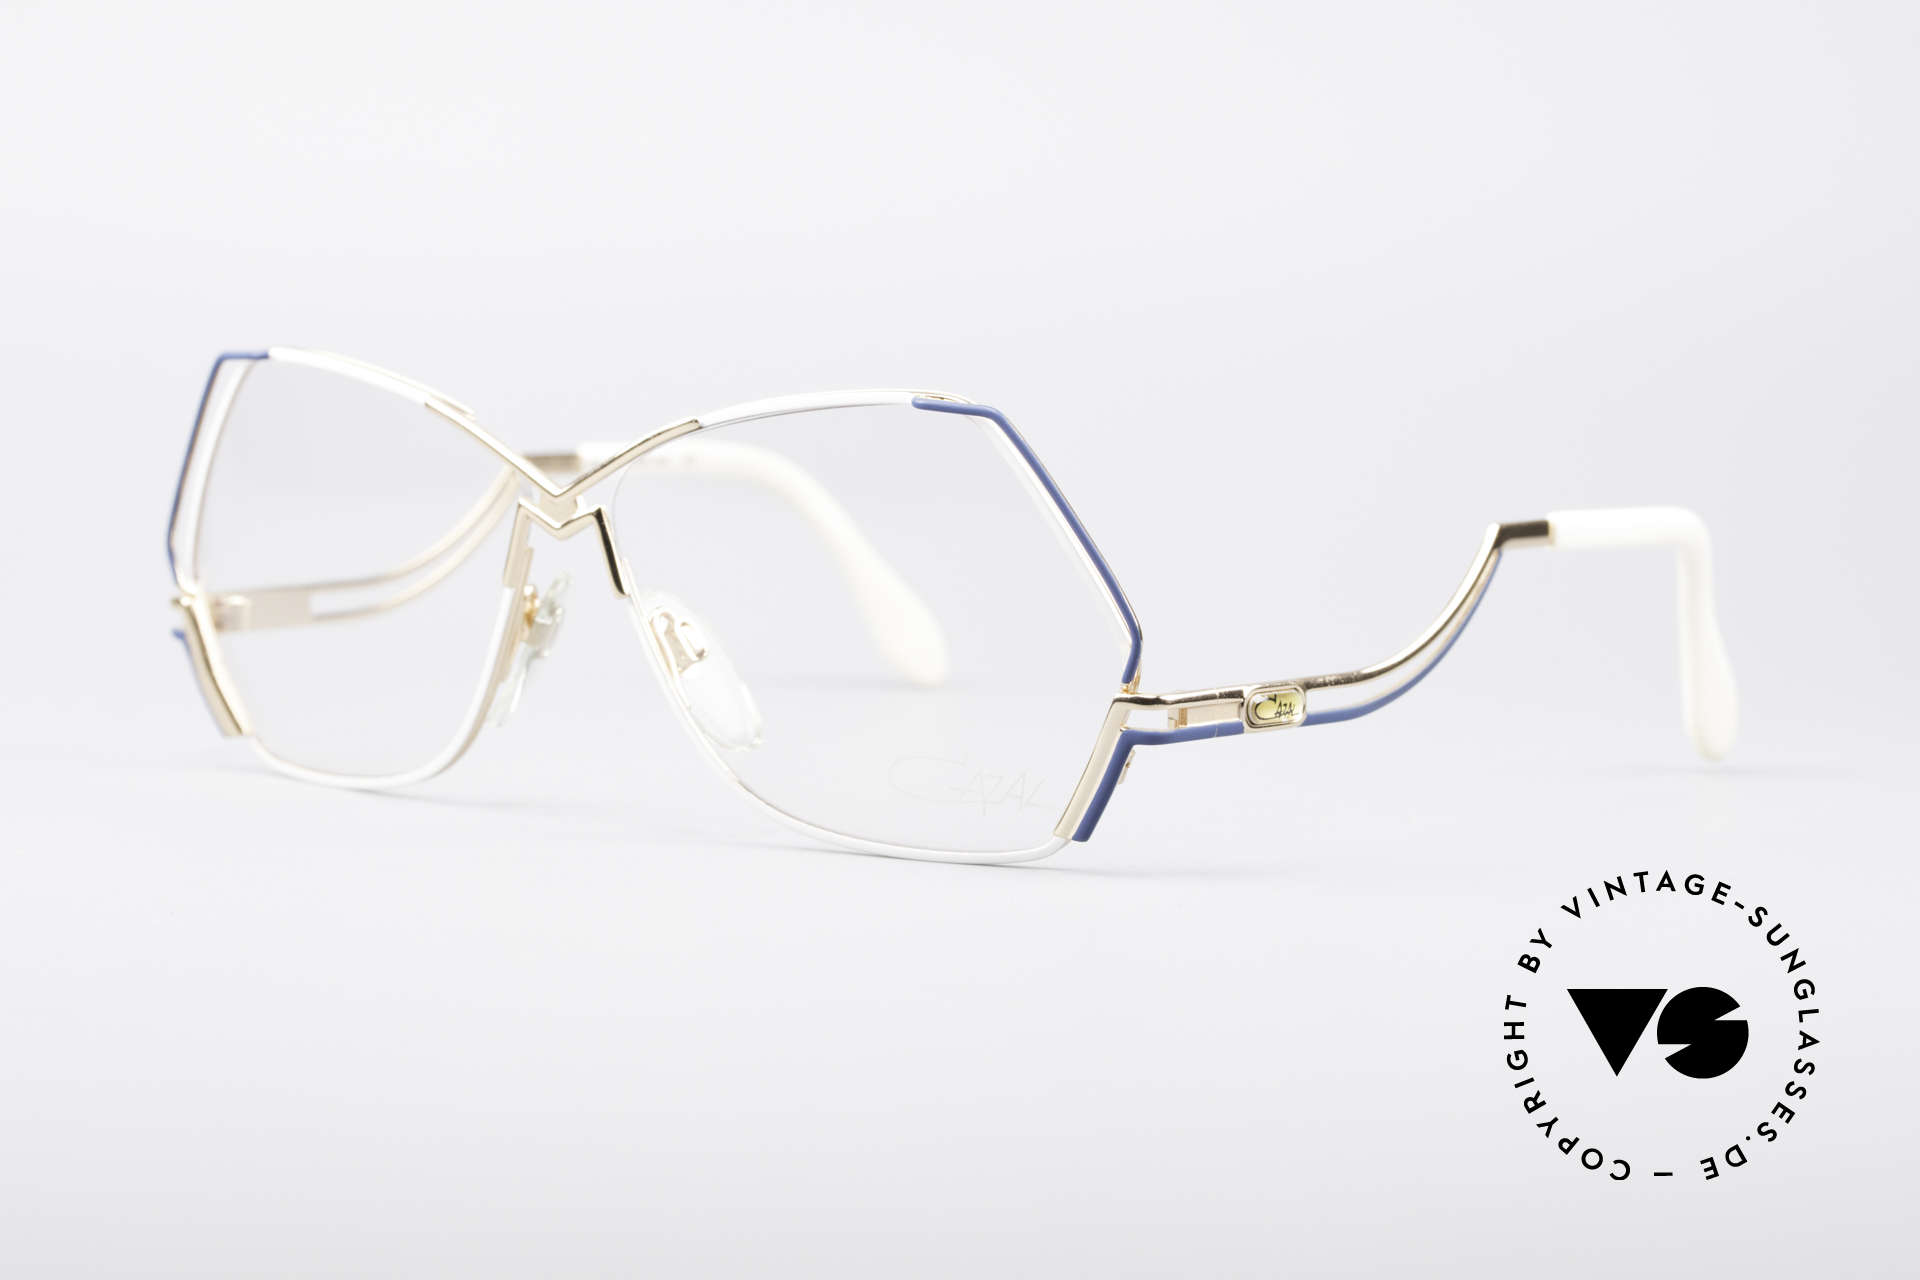 Cazal 226 West Germany Vintage Glasses, a true eye-catcher; just beautiful and simply unique, Made for Women